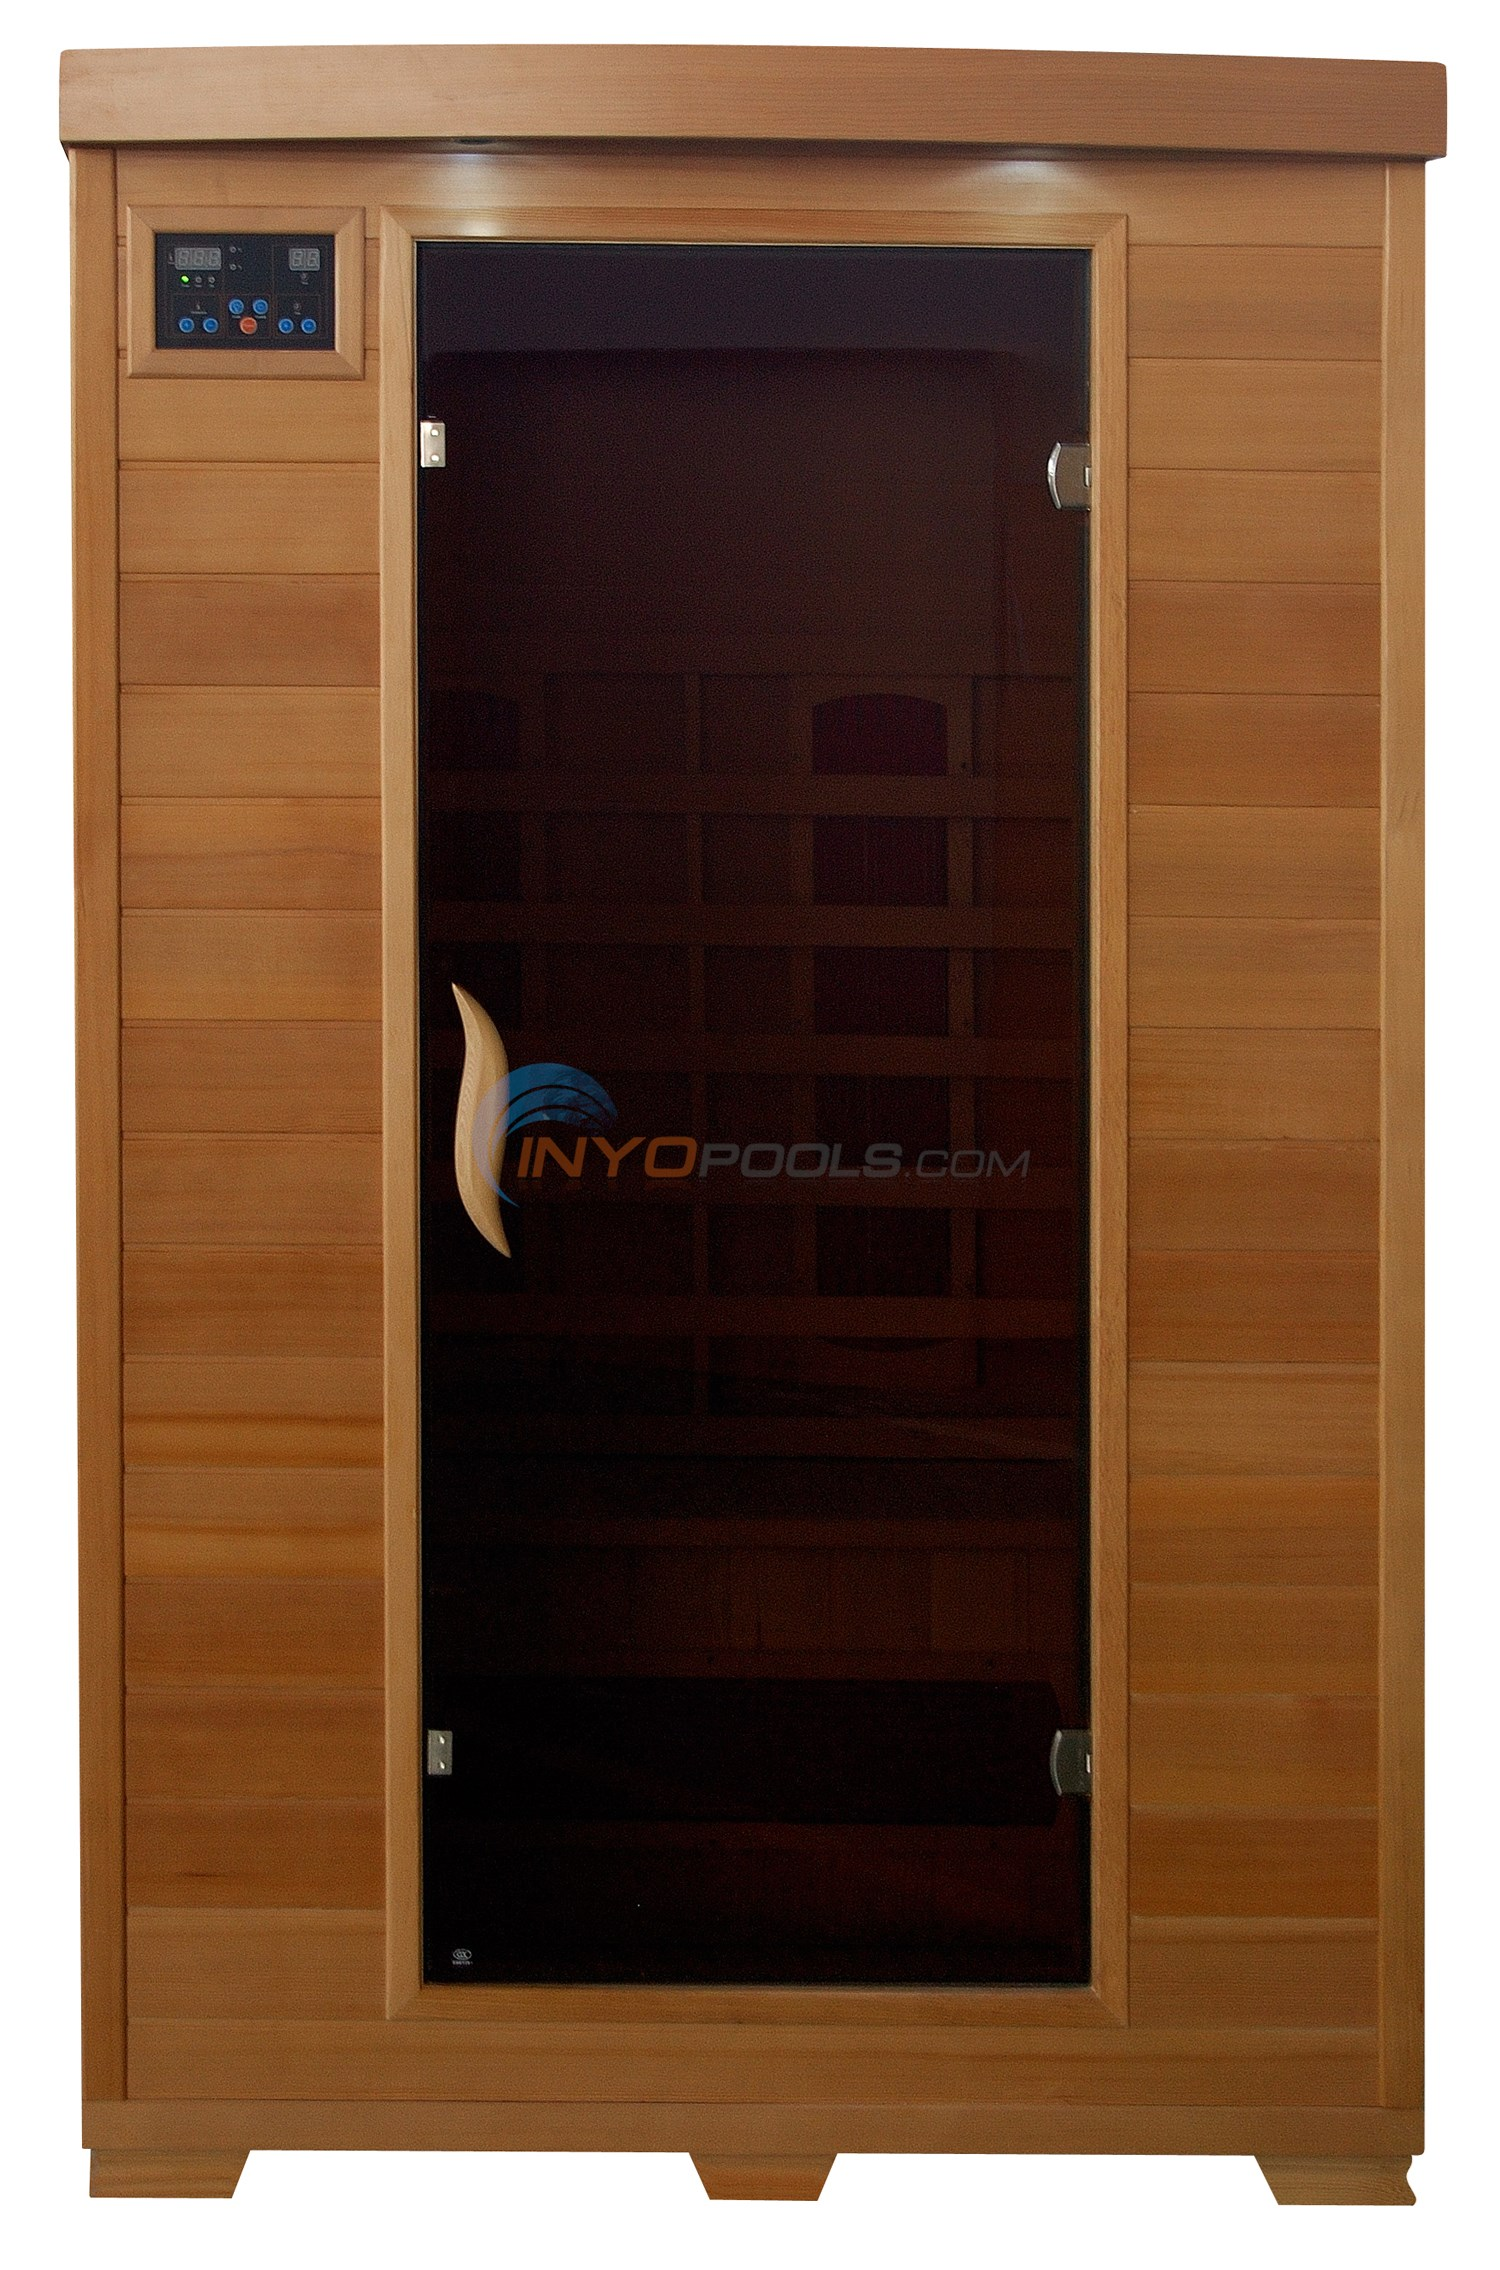 Blue Wave Coronado - 2 Person Ceramic Infrared Sauna - SA2406